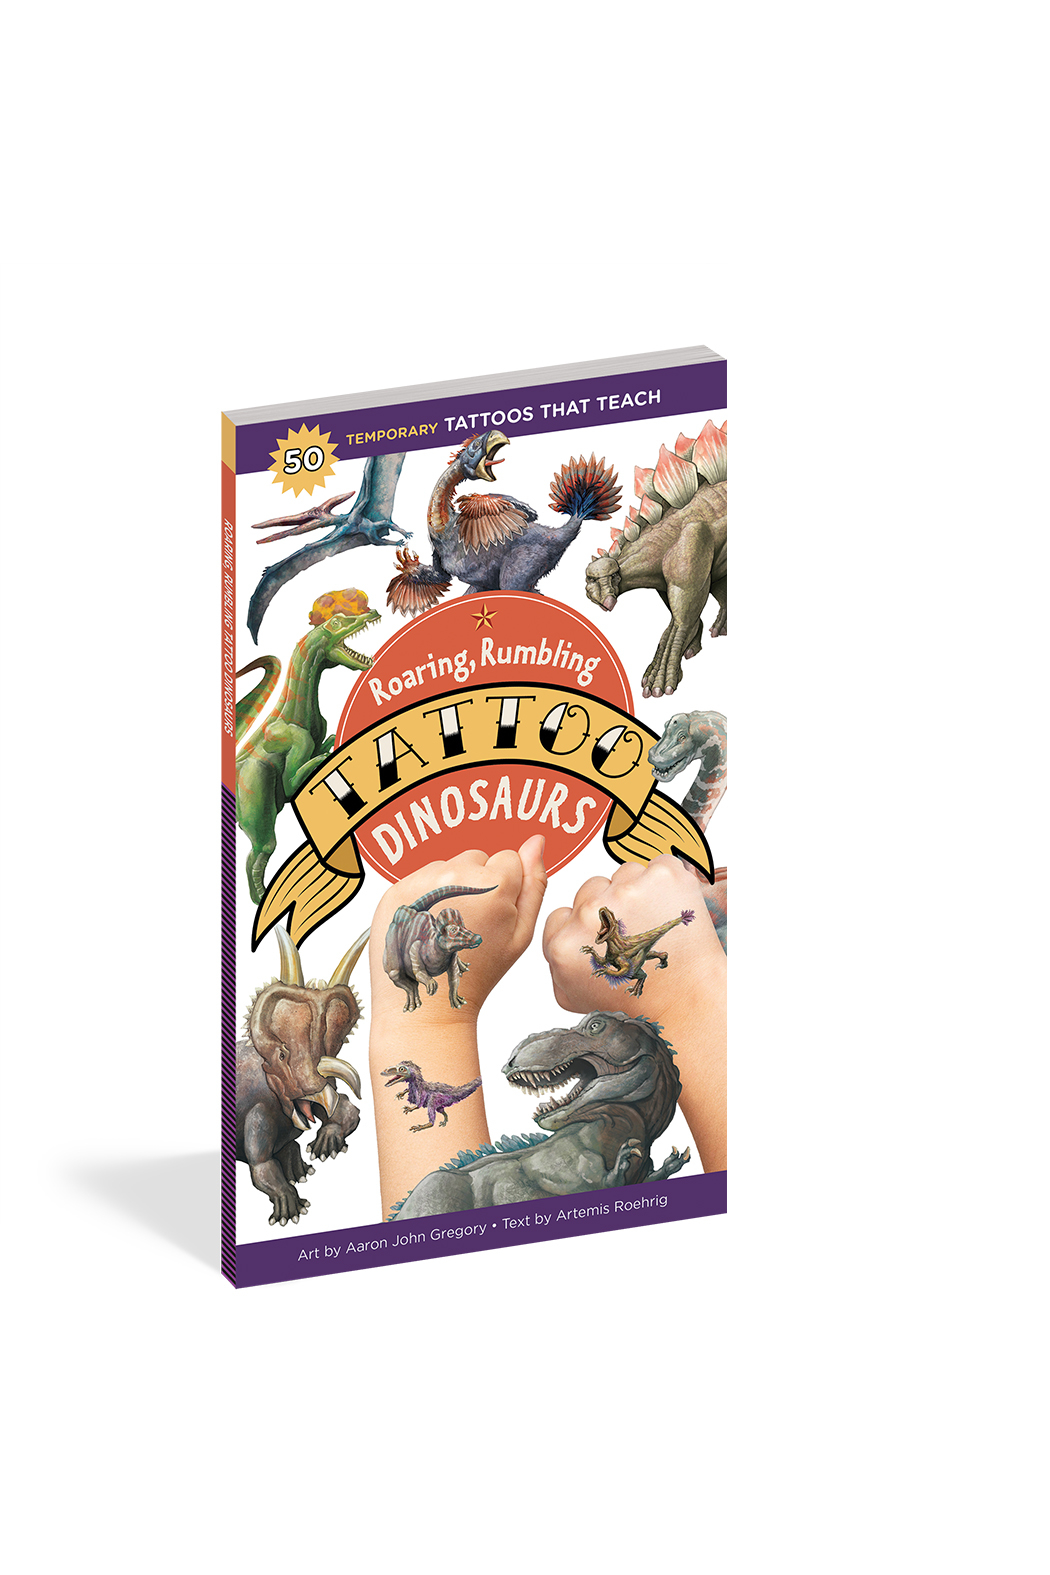 Workman Publishing Roaring, Rumbling Tattoo Dinosaurs - Front Cropped Image